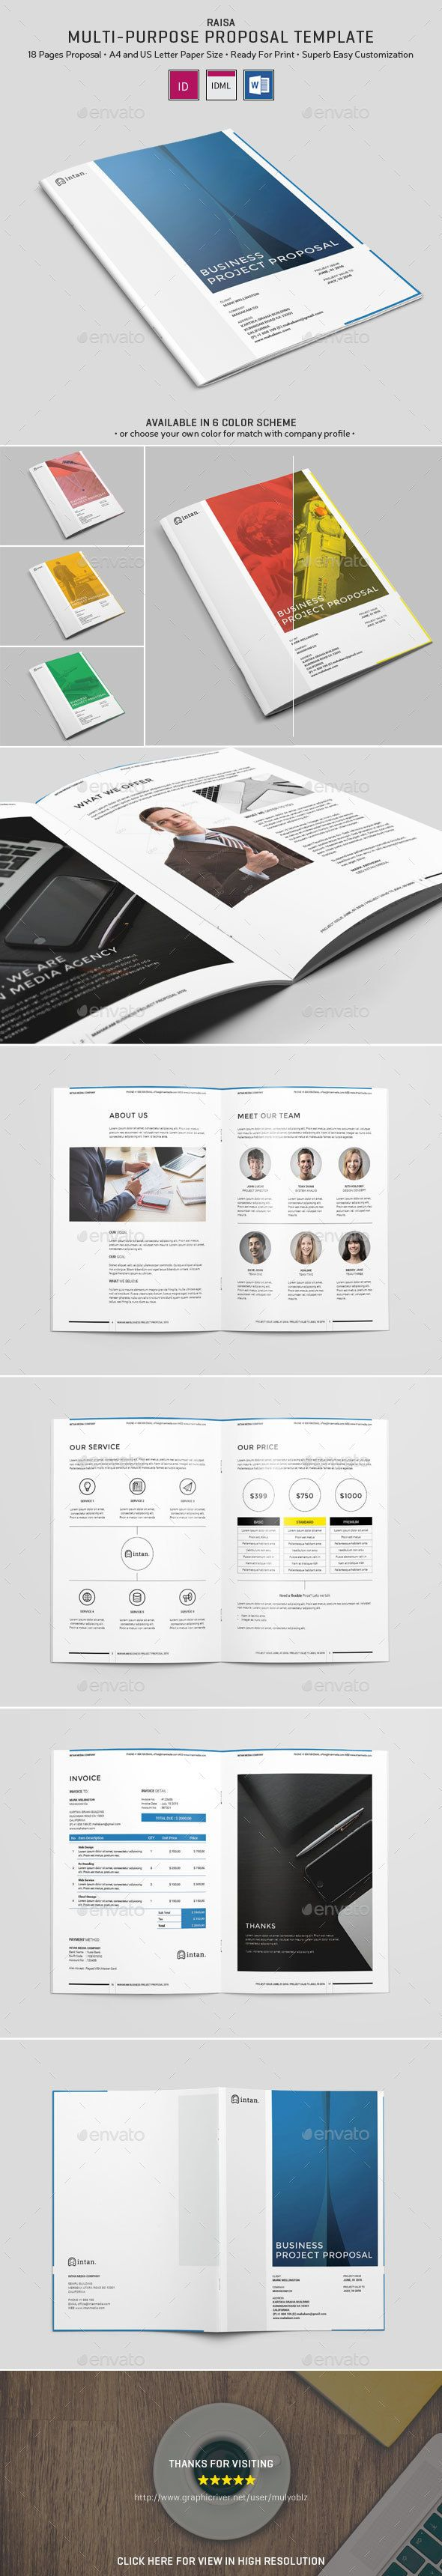 construction proposal templates%0A Buy Raisa  Proposal Template by MulyoBLZ on GraphicRiver  Raisa Proposal  Template Proposal Template Design is Easy Customizable or Change Color and